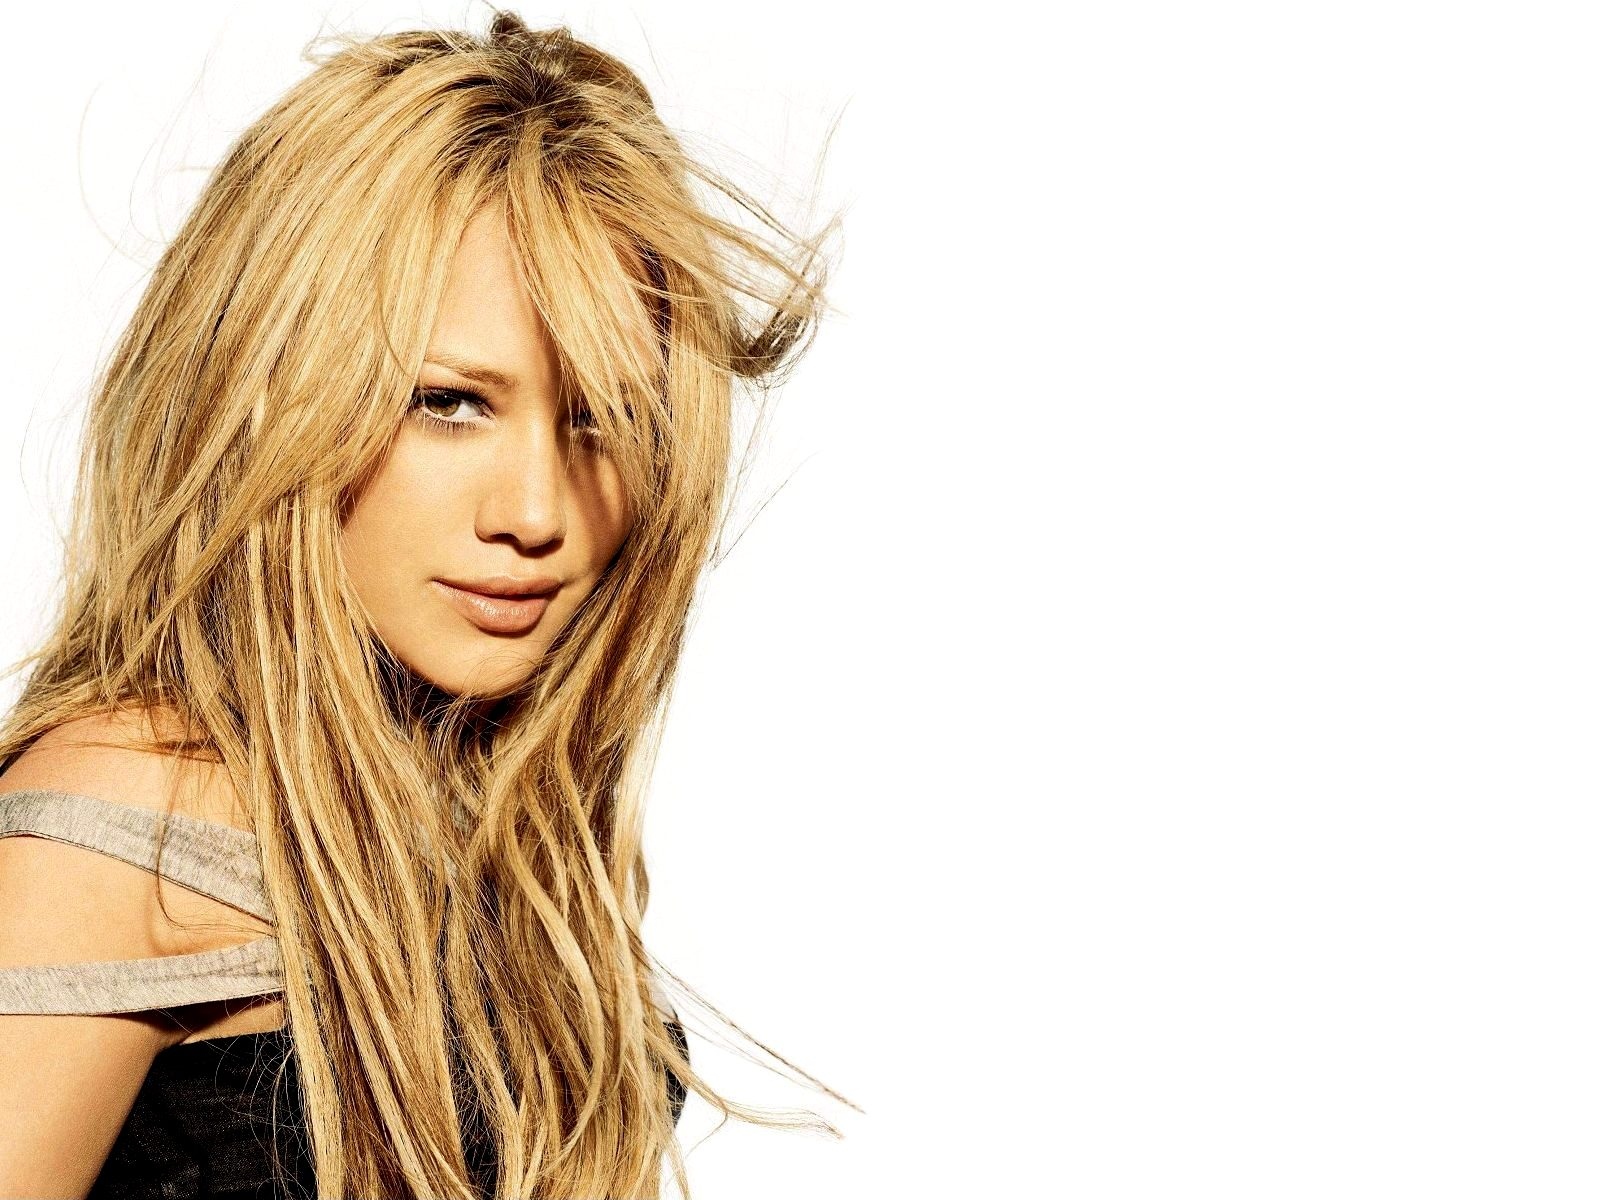 http://3.bp.blogspot.com/-gRxMRqIDtEc/Ttb9sgH5k9I/AAAAAAAAARg/5PZtw6FsMVI/s1600/Hilary-Duff-pictures-desktop-Wallpapers-HD-photo-images-5.jpg